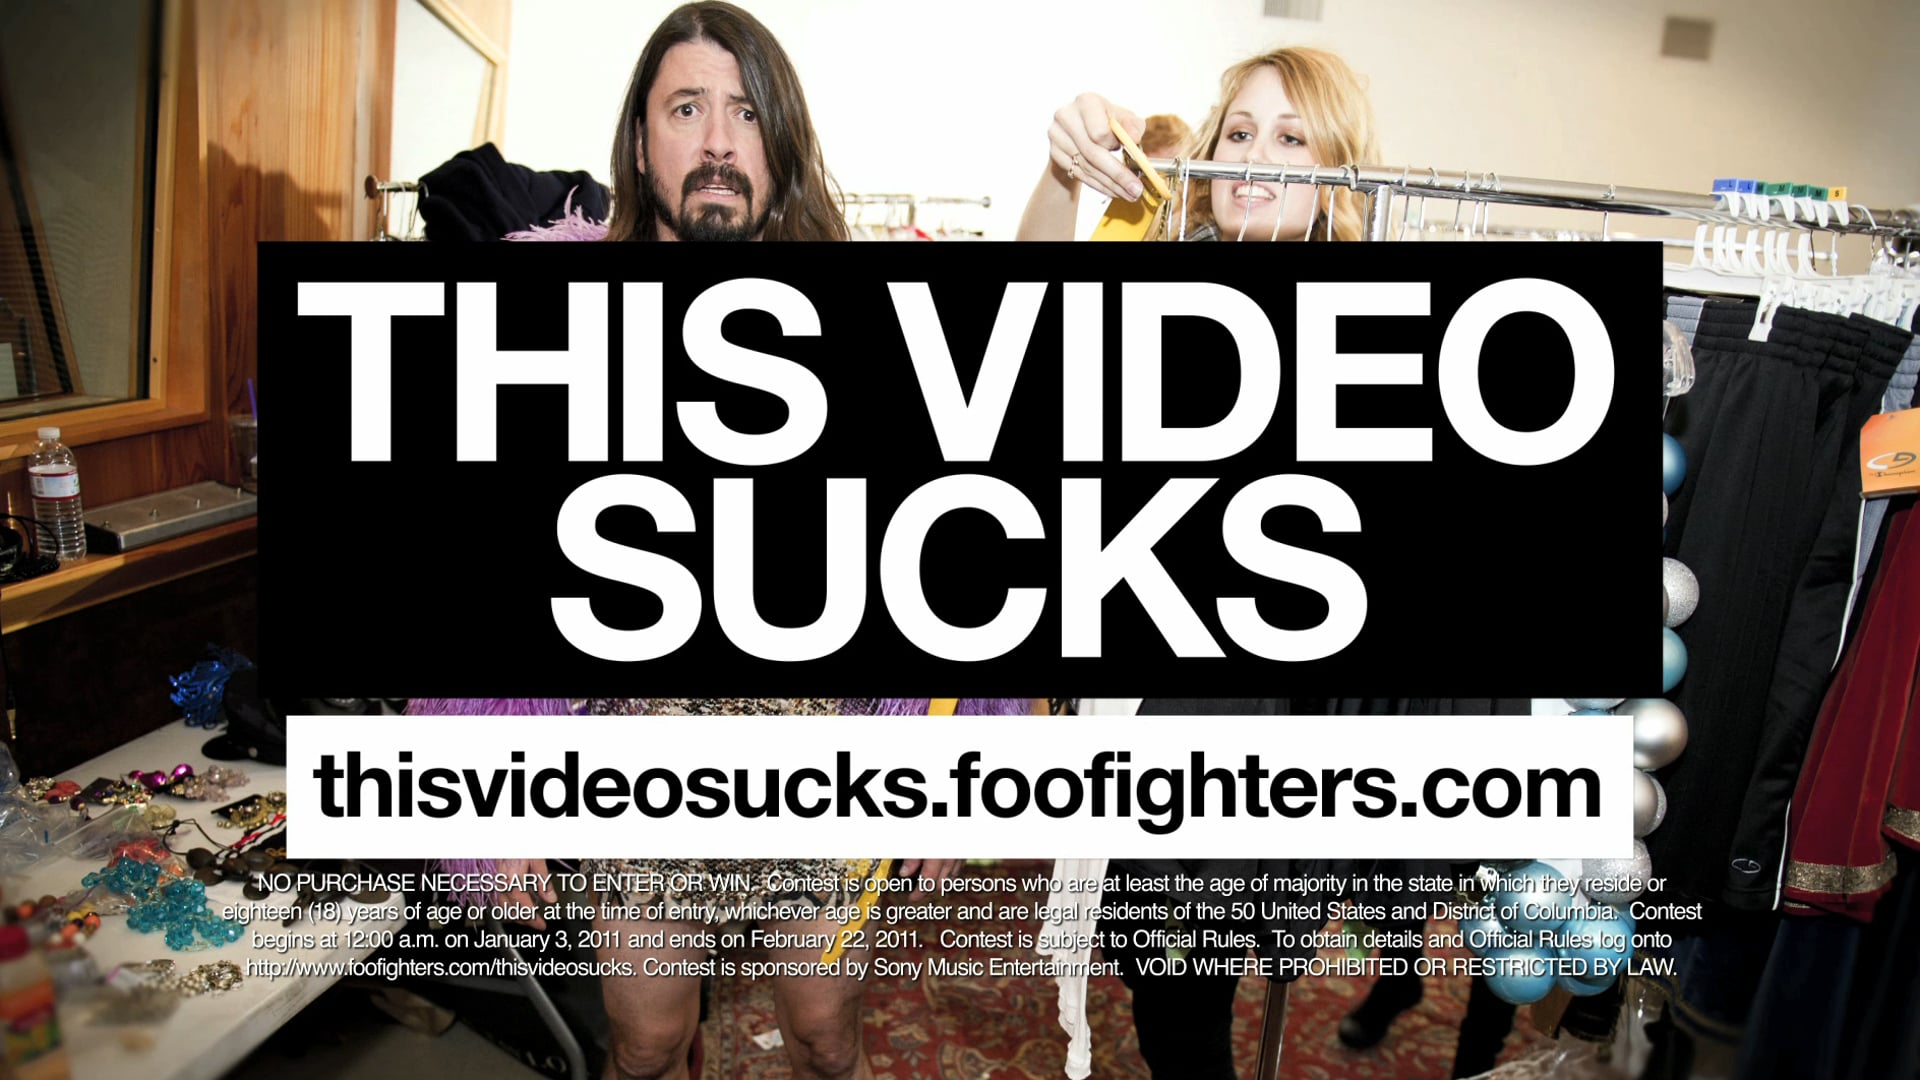 FOO FIGHTERS & KATHY GRIFFIN